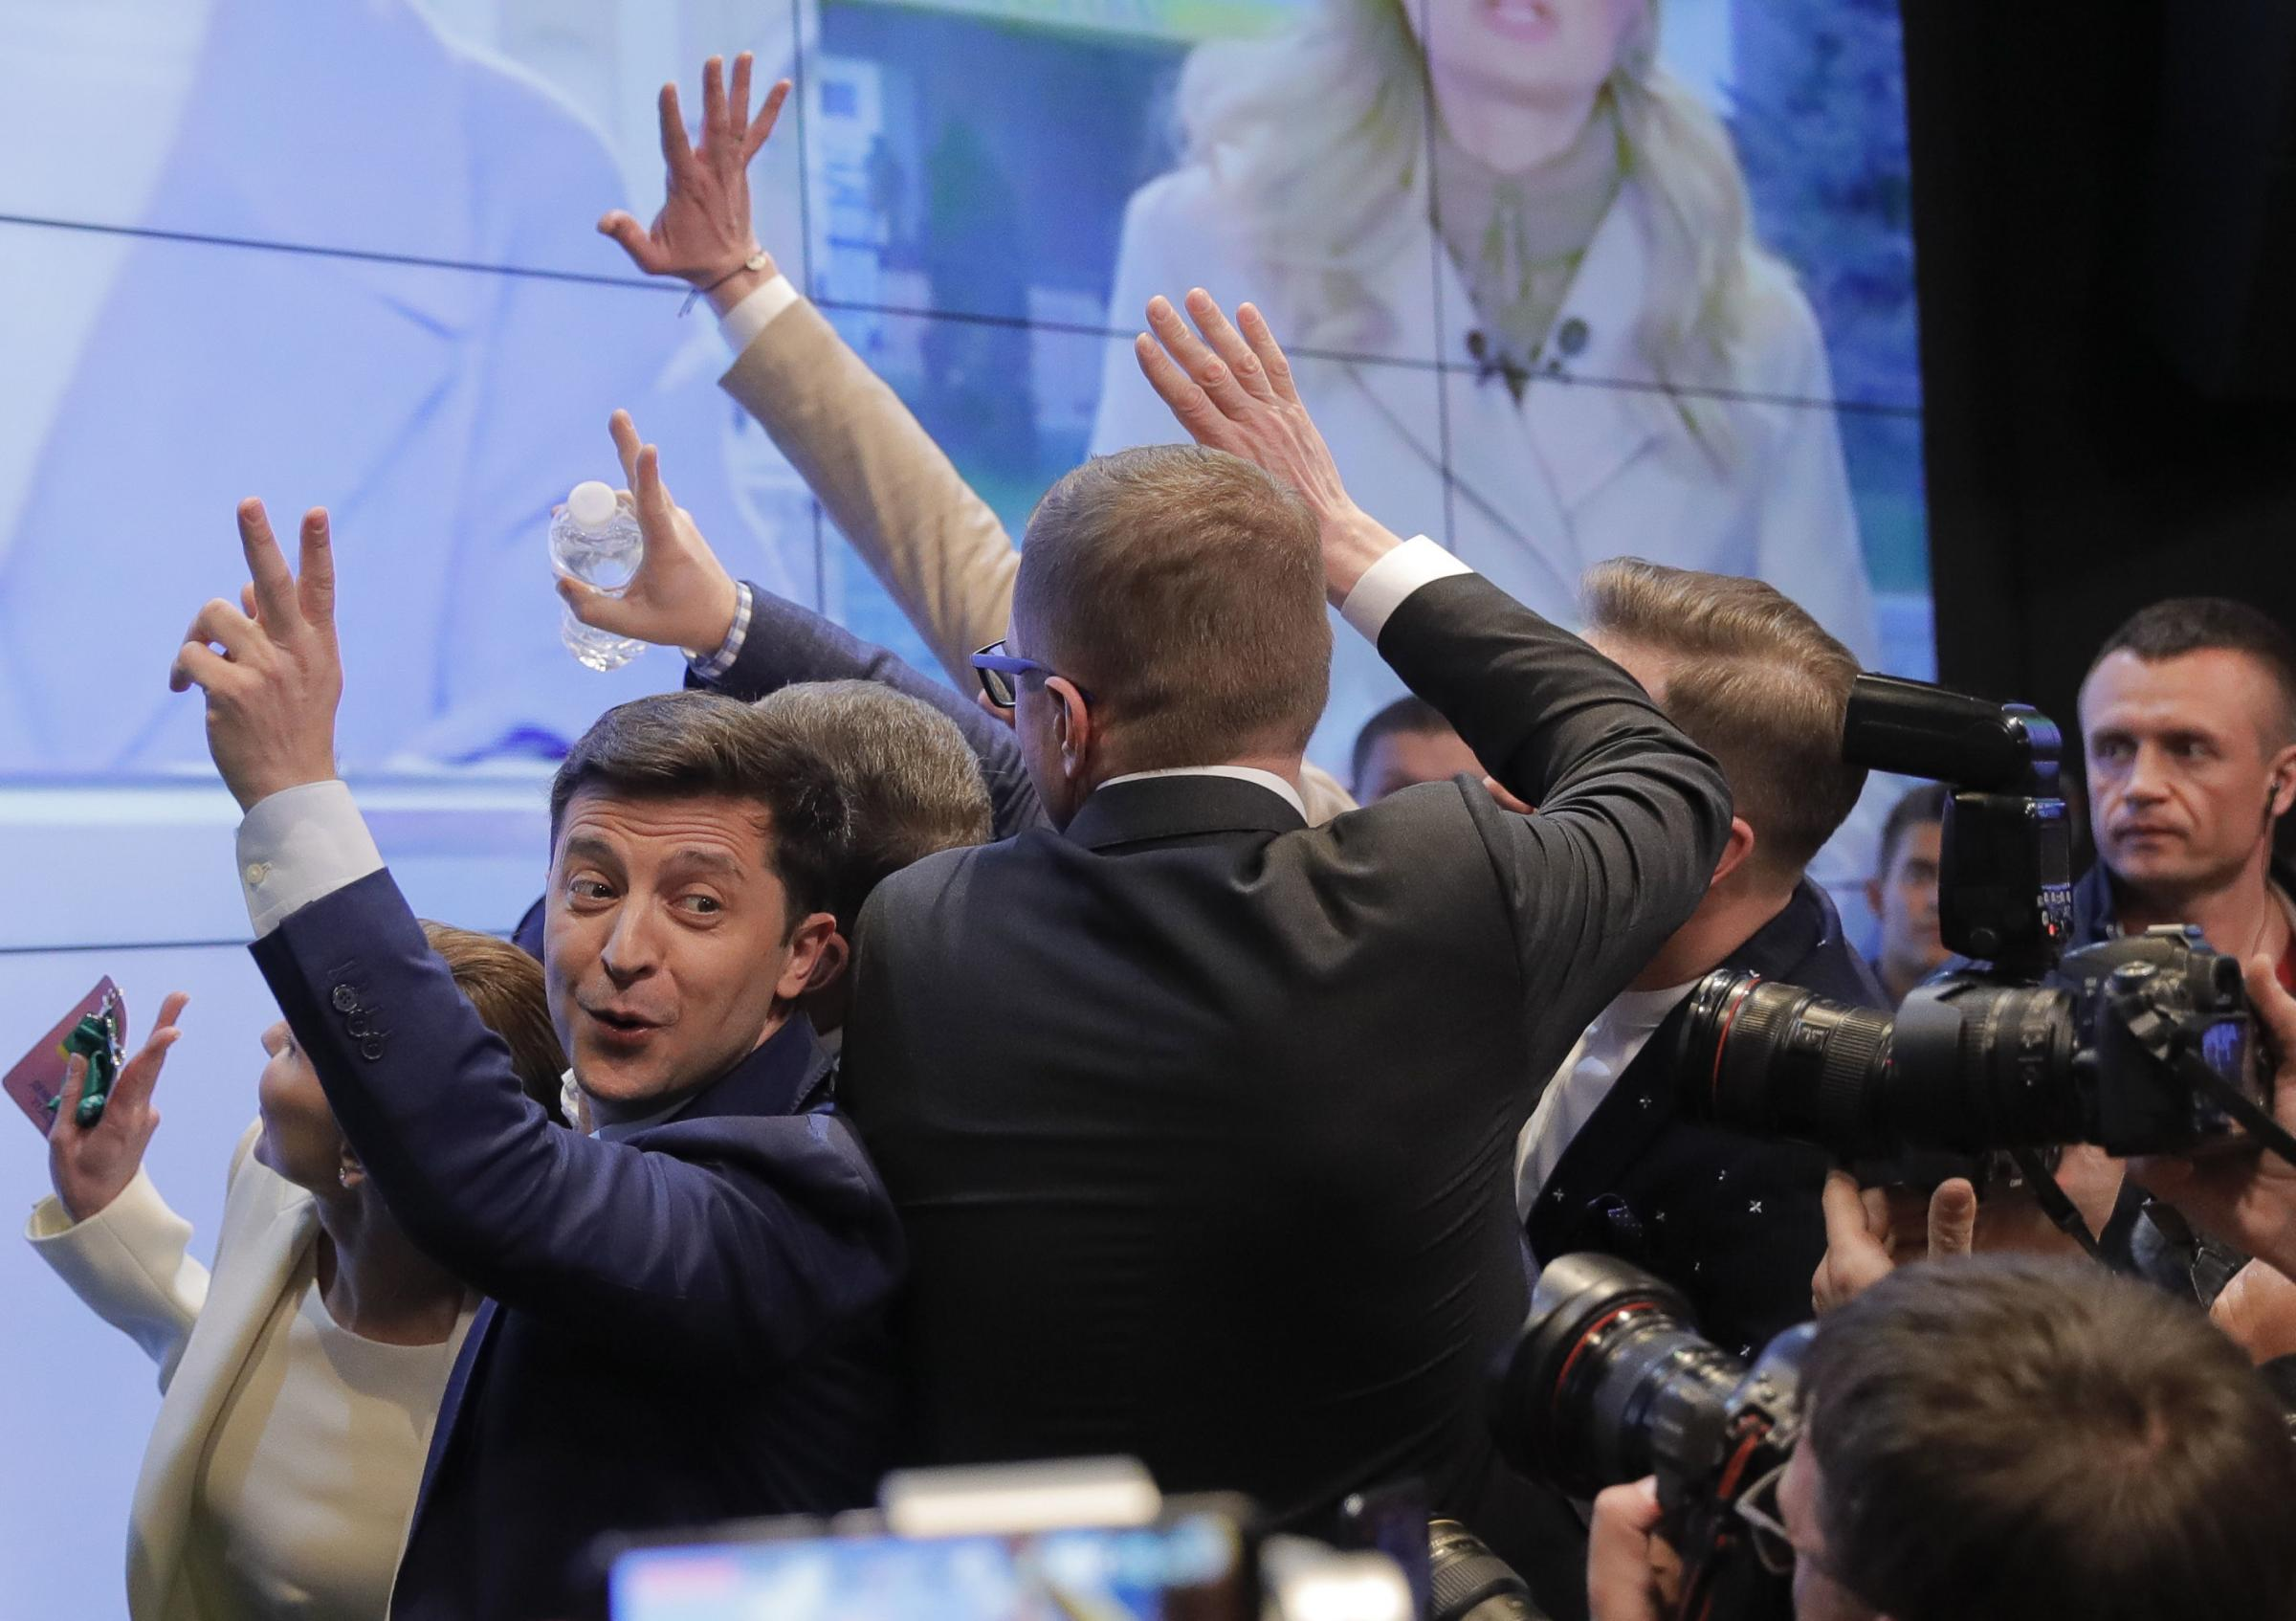 In this Sunday, April 21, 2019, photo, Ukrainian comedian and presidential candidate Volodymyr Zelenskiy, left, makes the victory sign after seeing the exit polls for the second round of presidential elections in Kiev, Ukraine. Ukrainians voted on Sunday